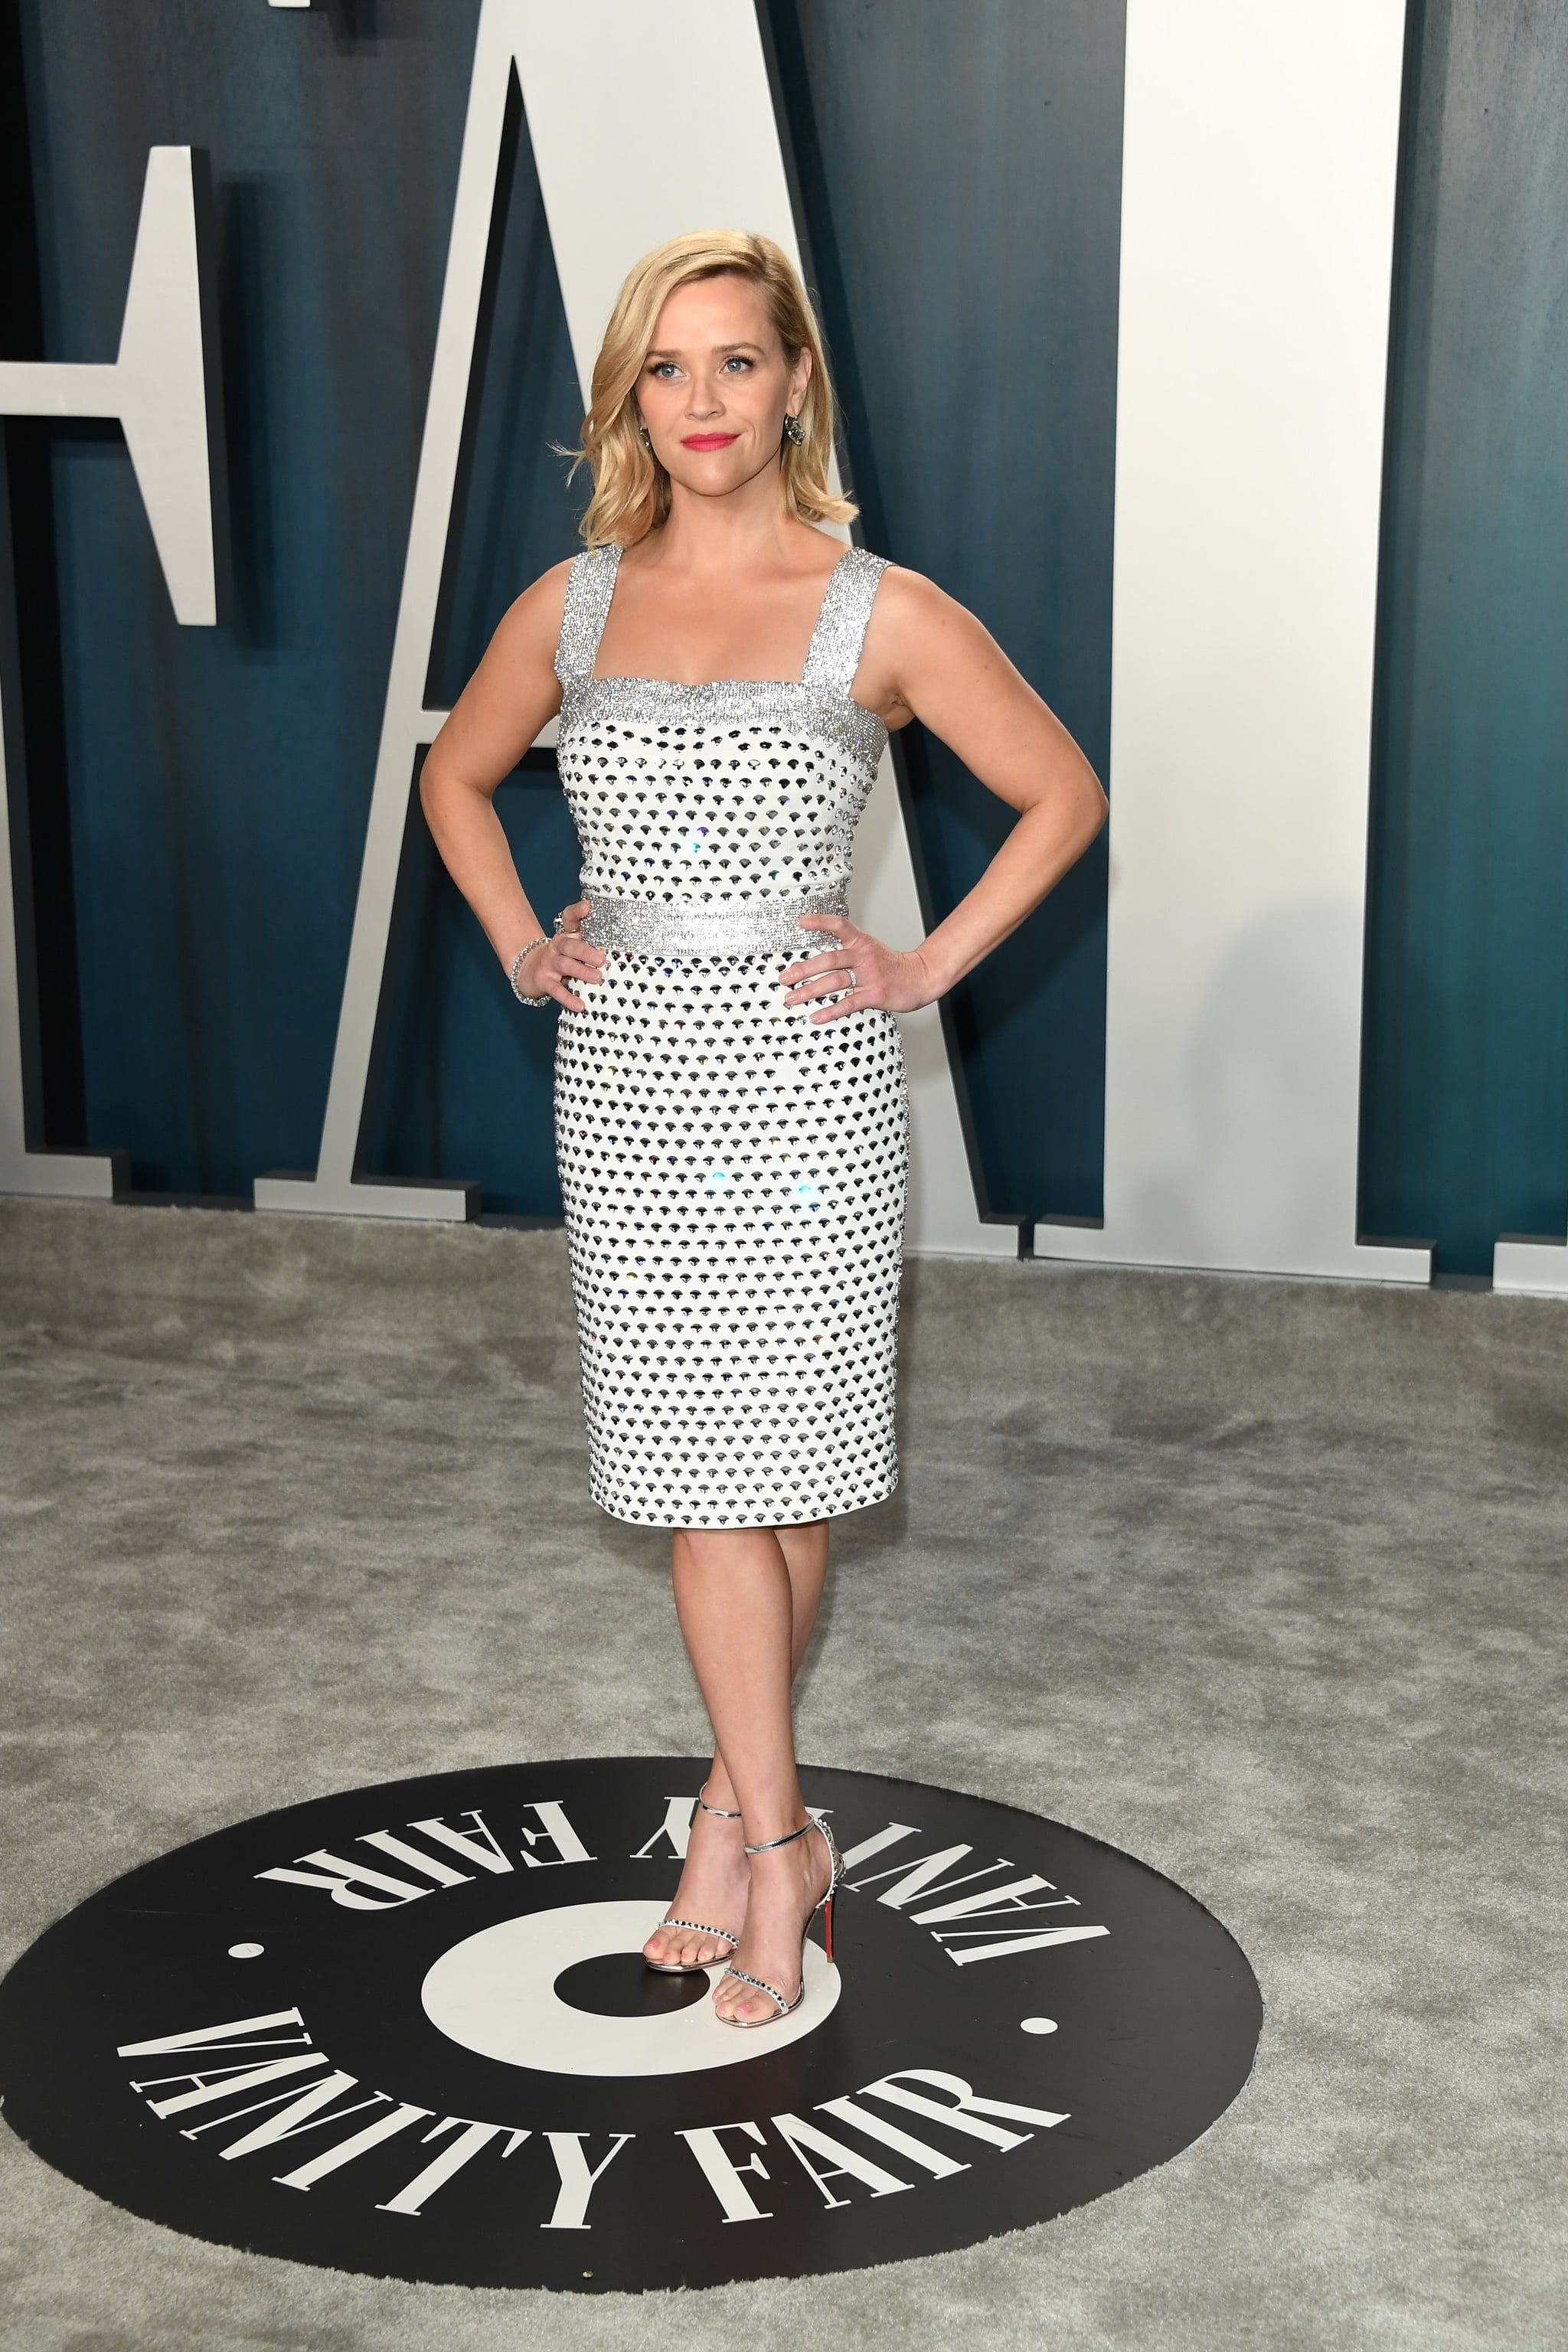 Reese Witherspoon at the Vanity Fair Oscars afterparty 2020.